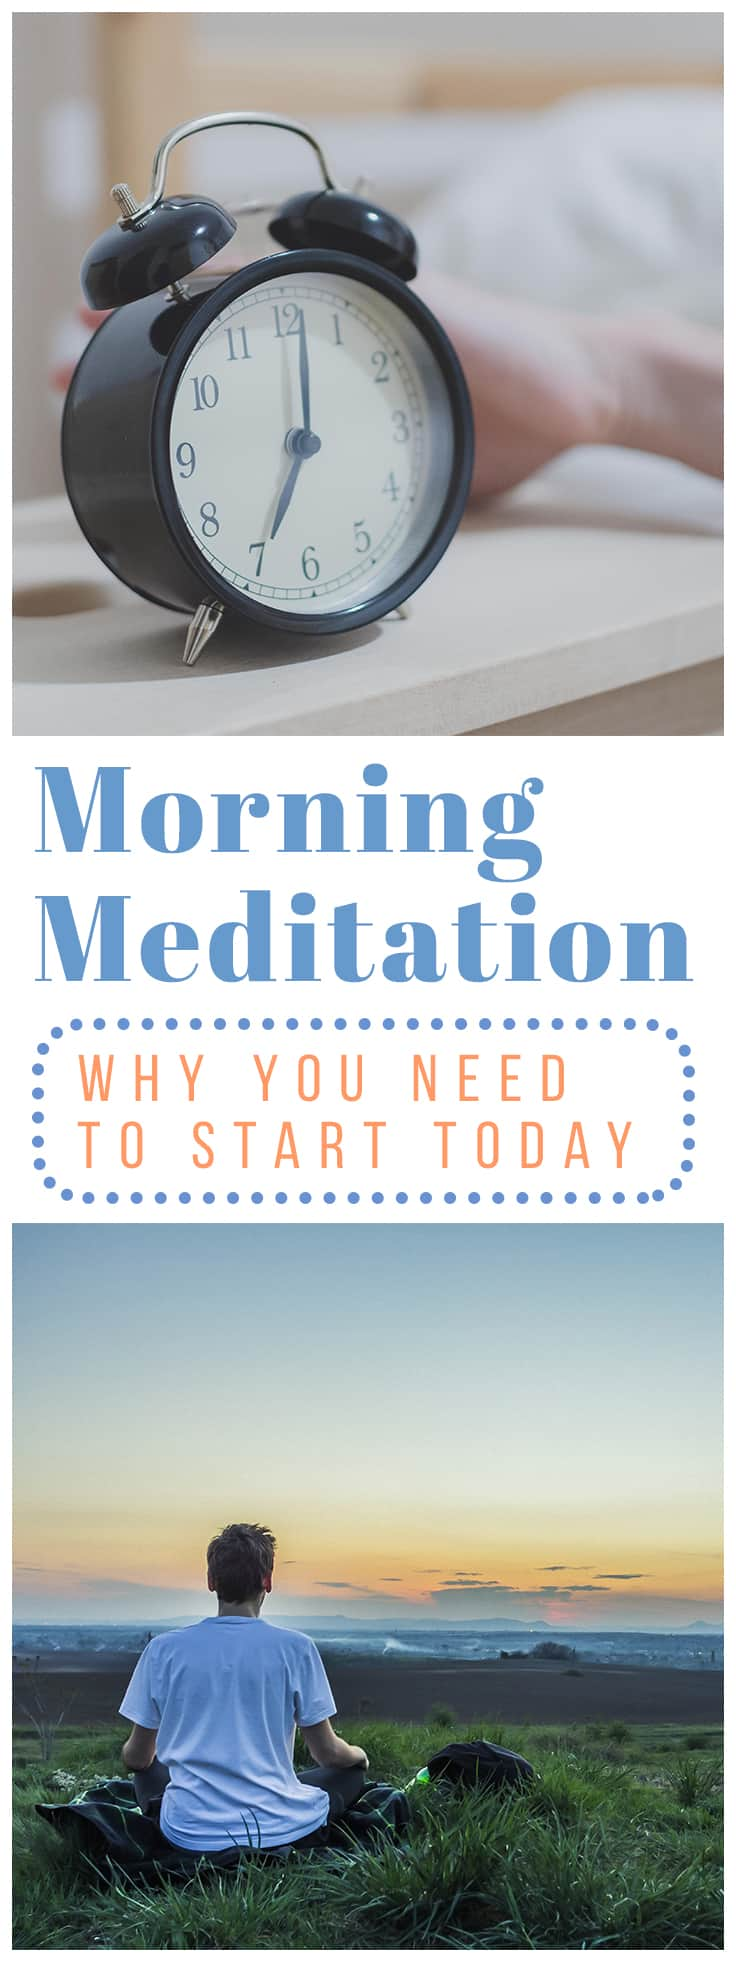 Starting a morning meditation practice can be a huge benefit!  Here are some of the ways it helped me: - It sets a tone of calm for the entire day. - It gives me more energy.  - It builds focus.  - It gives me an overall sense of well-being.  Click the image to see how to start meditating today! #meditation #morningmeditation #meditationbenefits #increaseproductivity #morningroutine #startmeditating #meditationroutine